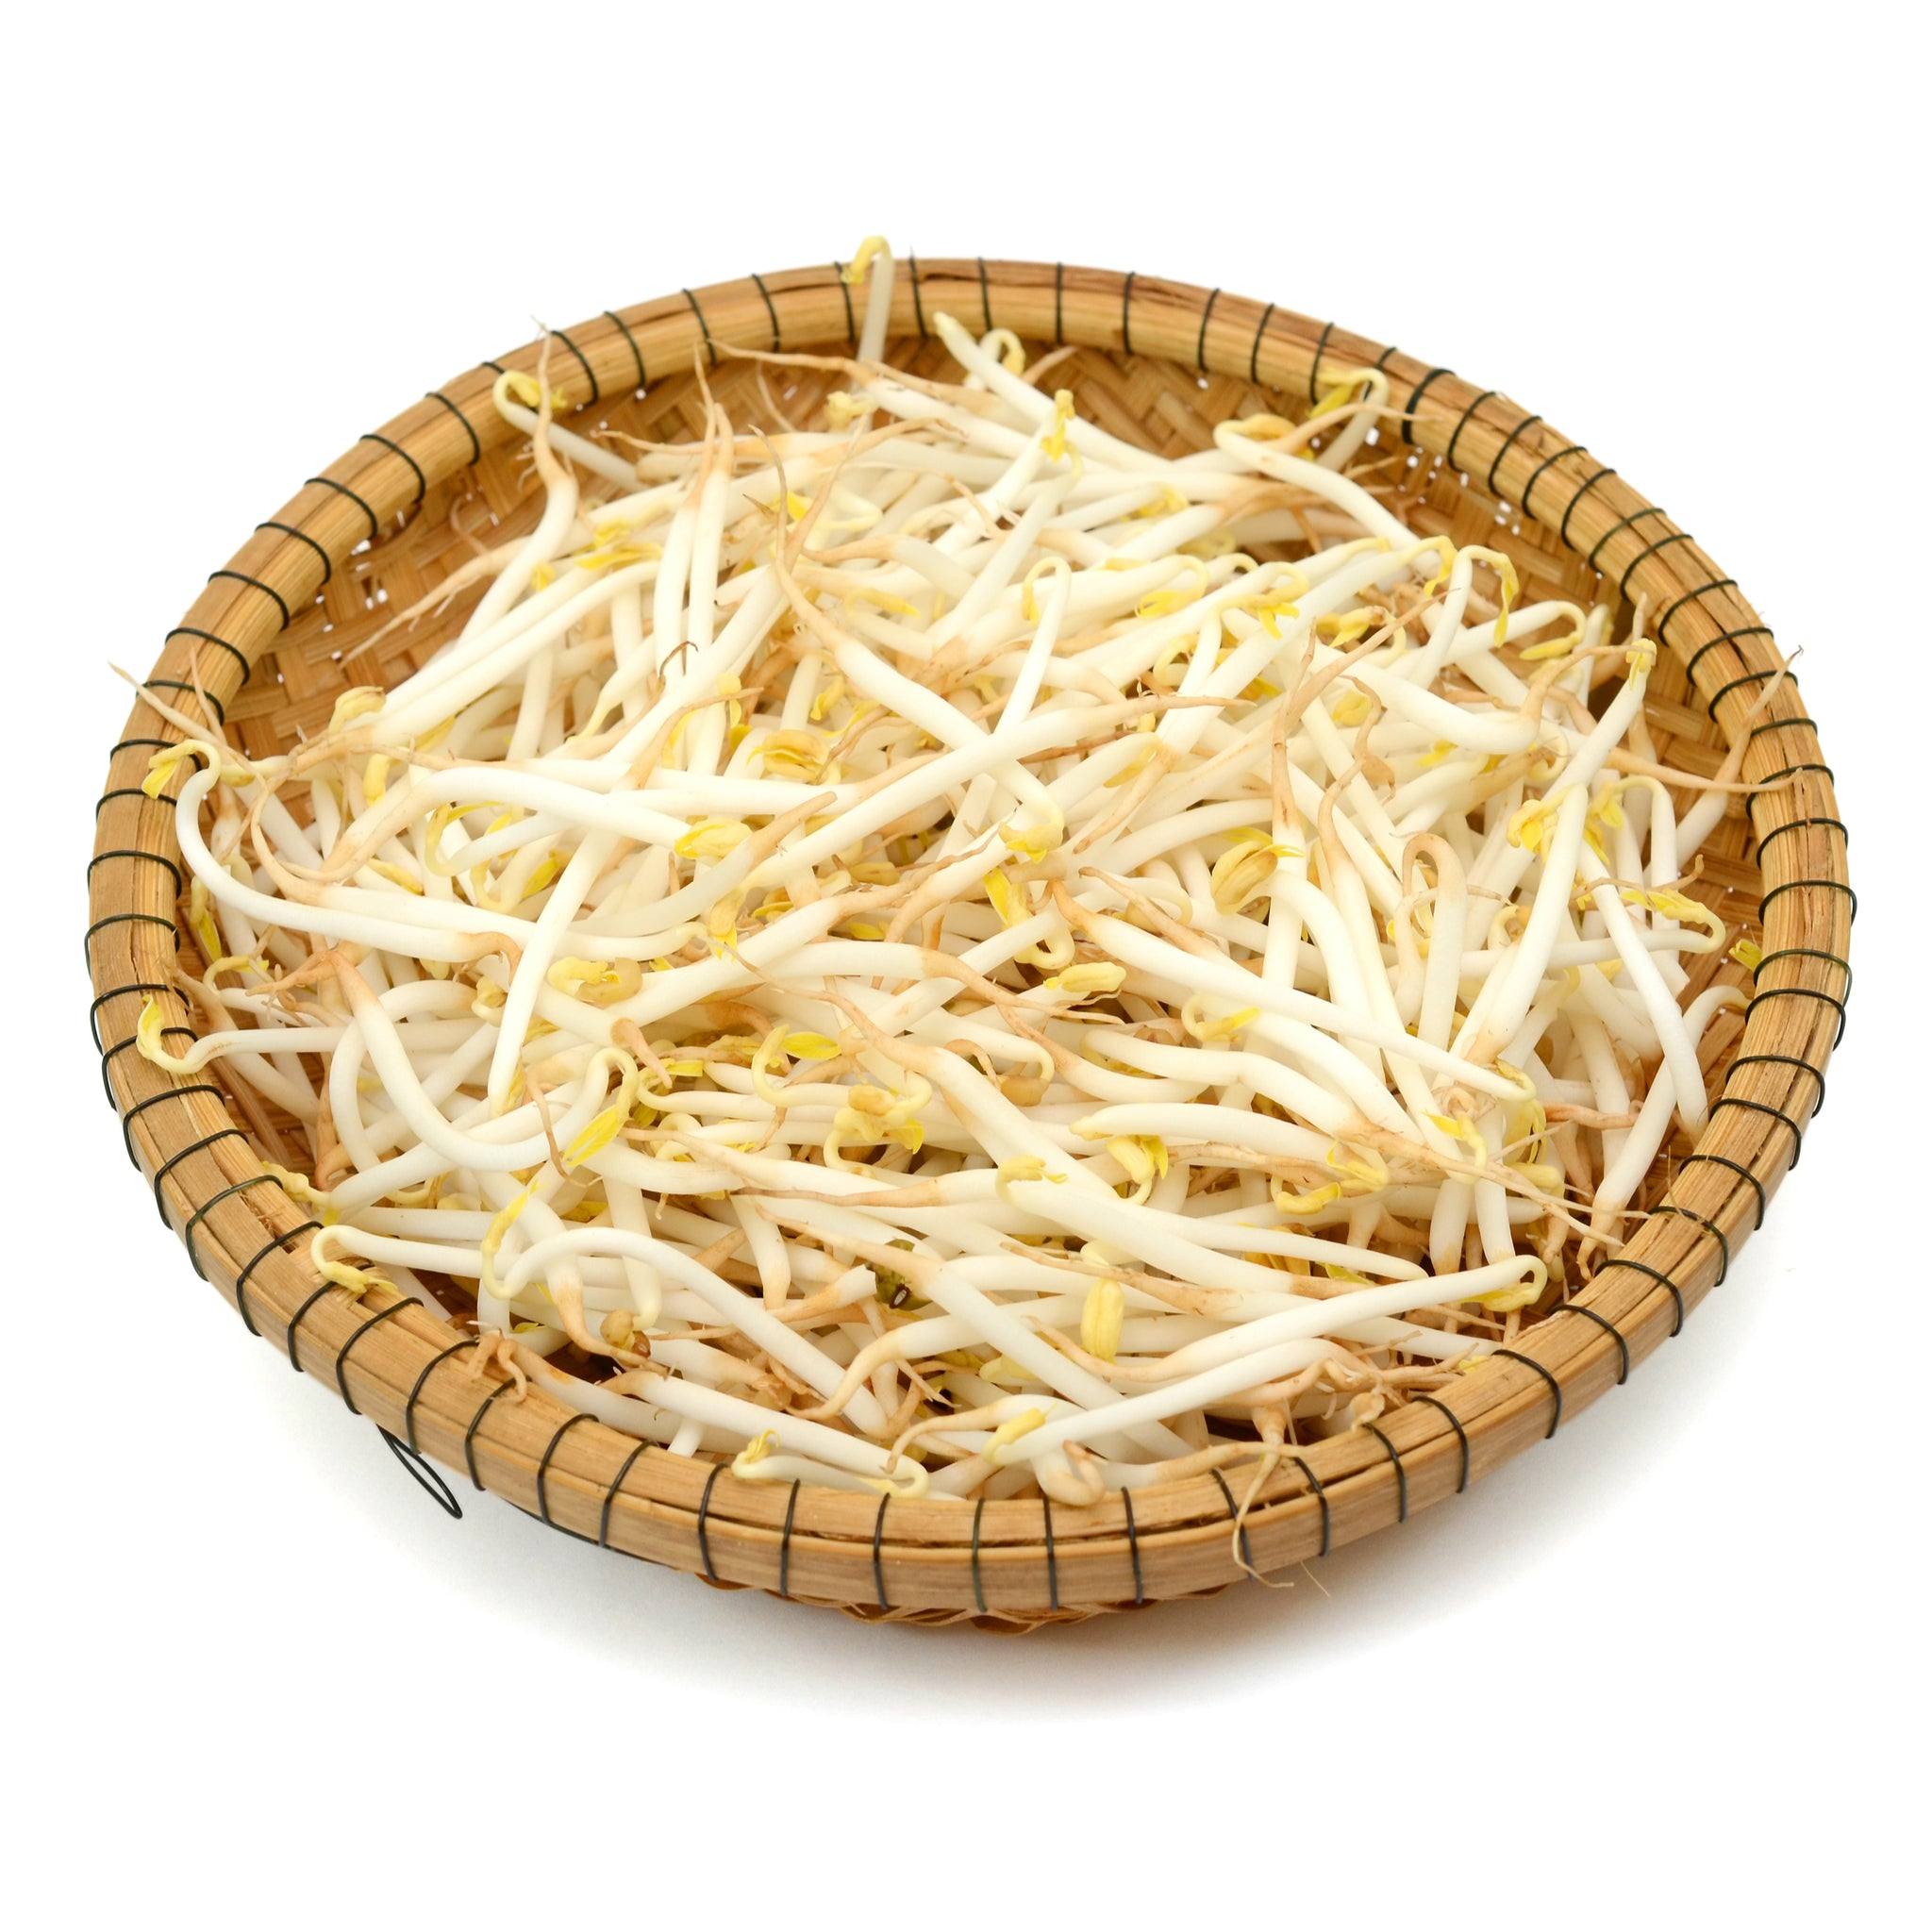 Bean Sprouts / beansprouts (400g can) by Golden Swan